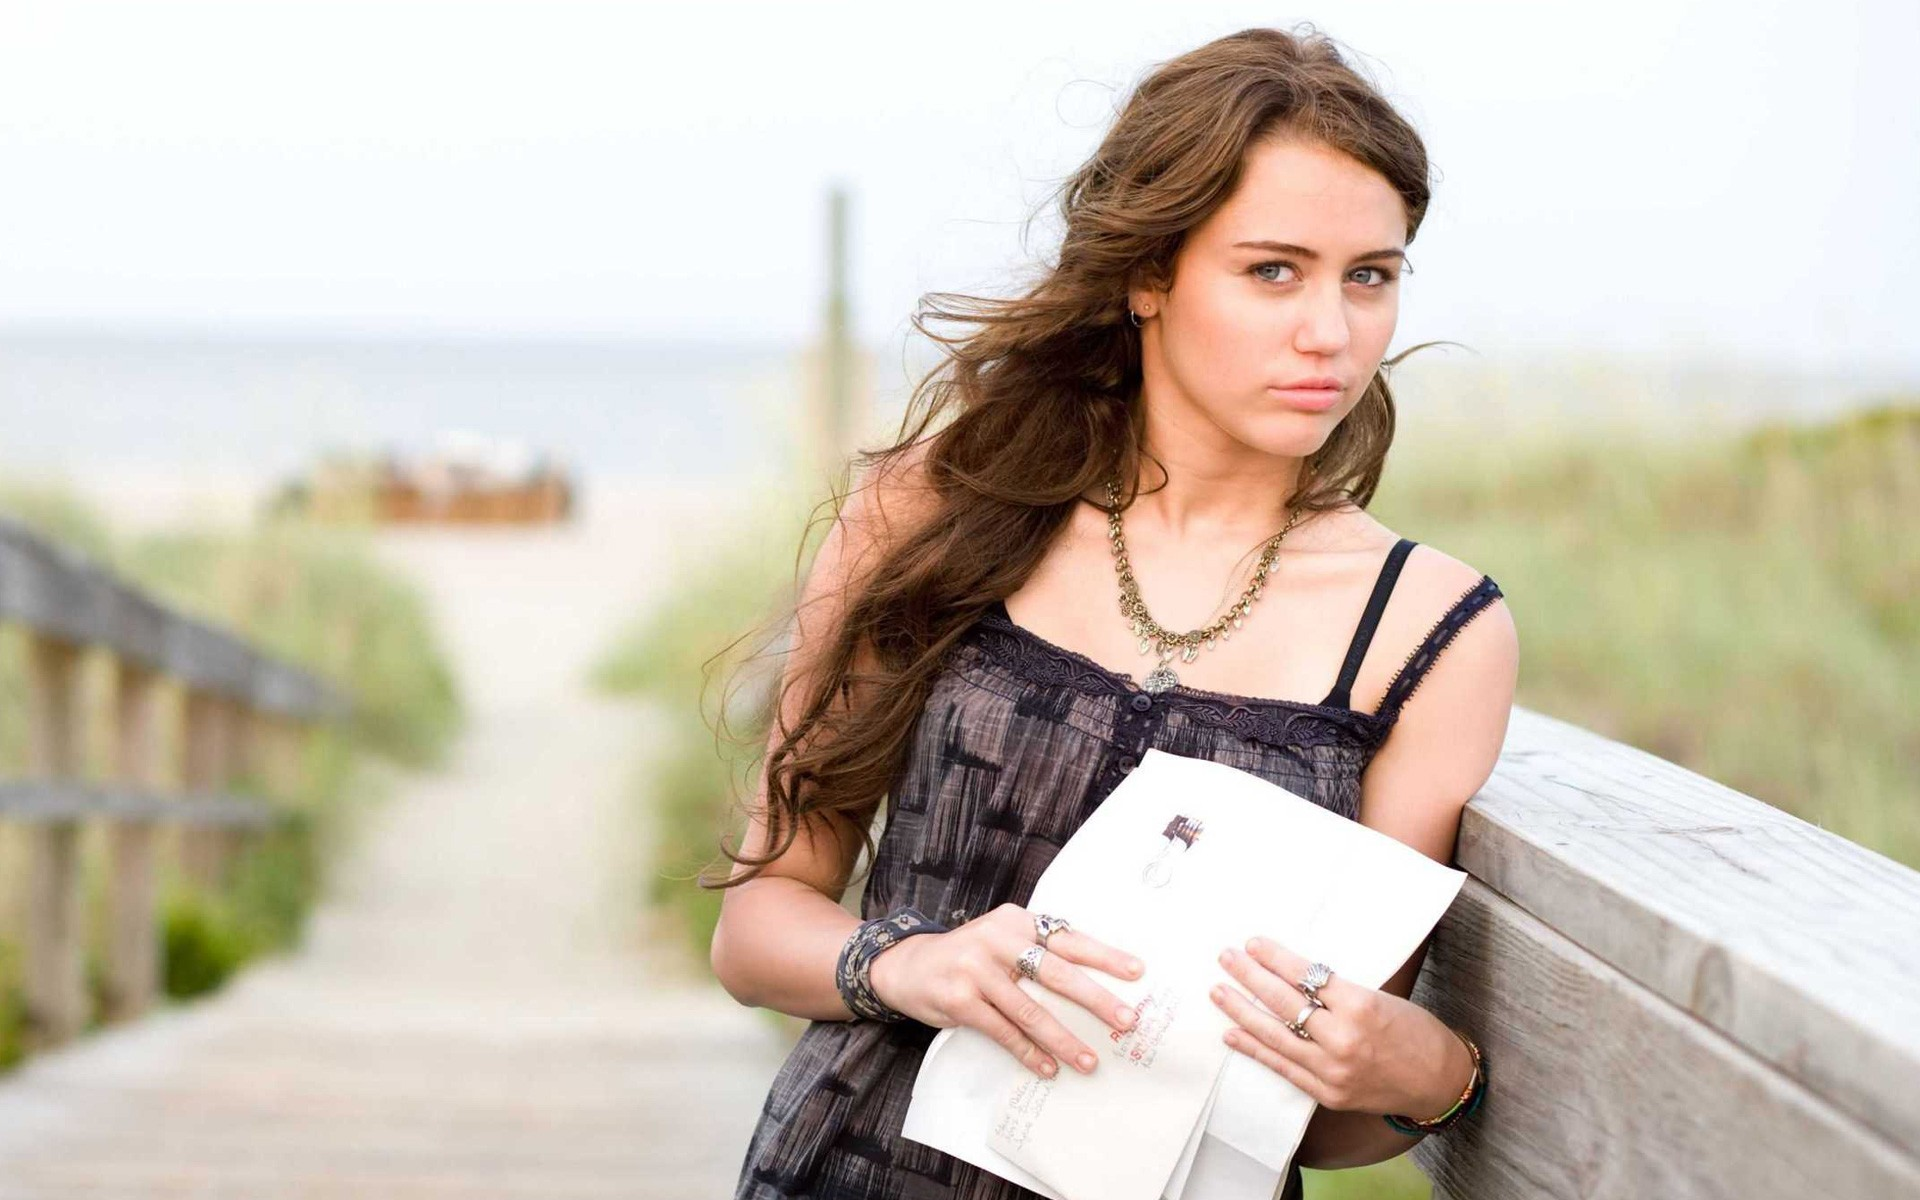 Wallpaper For Iphone X Live Miley Cyrus In The Last Song Movie Wallpapers Hd